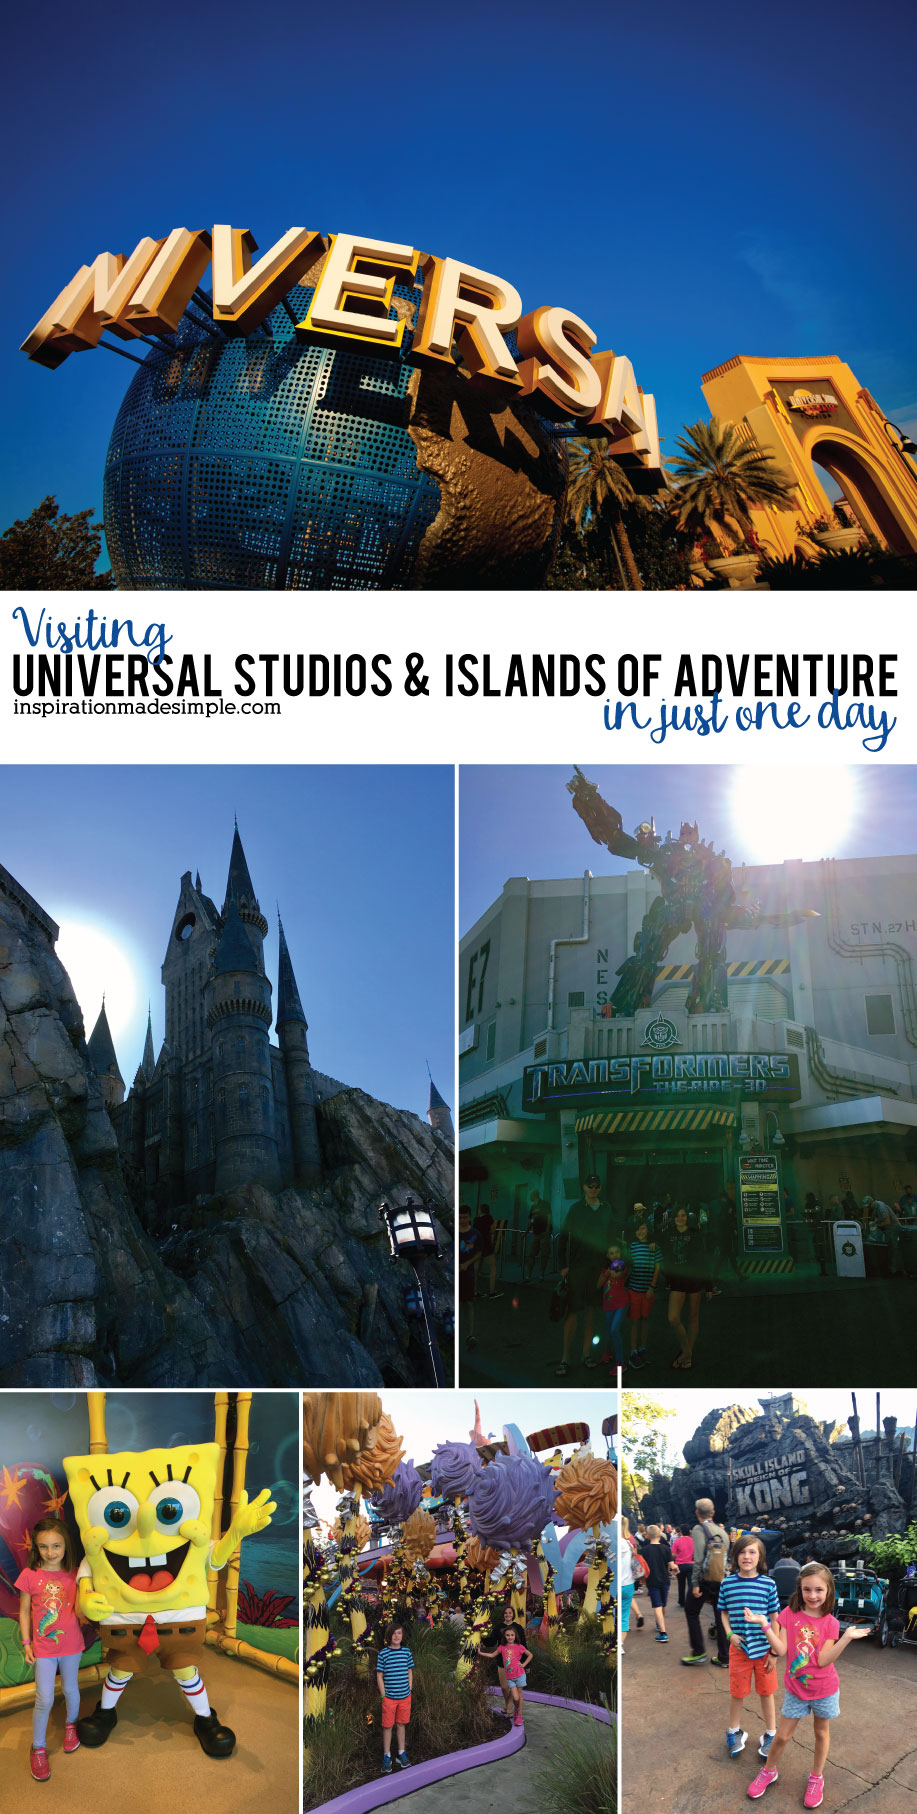 Visiting Universal Studios and Islands of Adventure in just one day